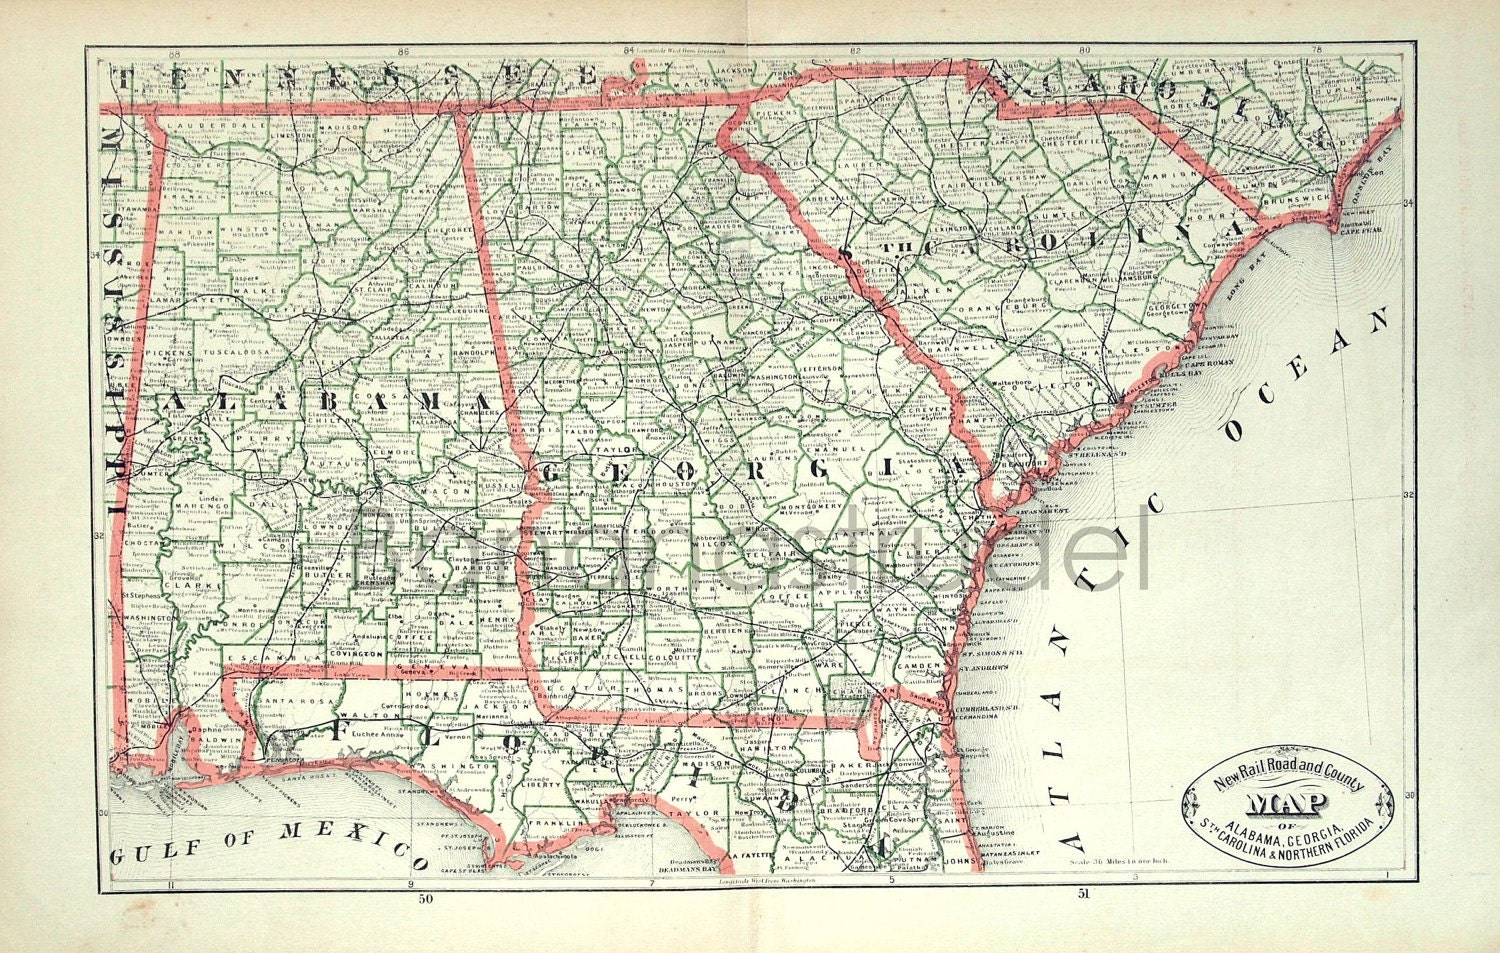 Map Of Alabama And Georgia My Blog - Road map of alabama